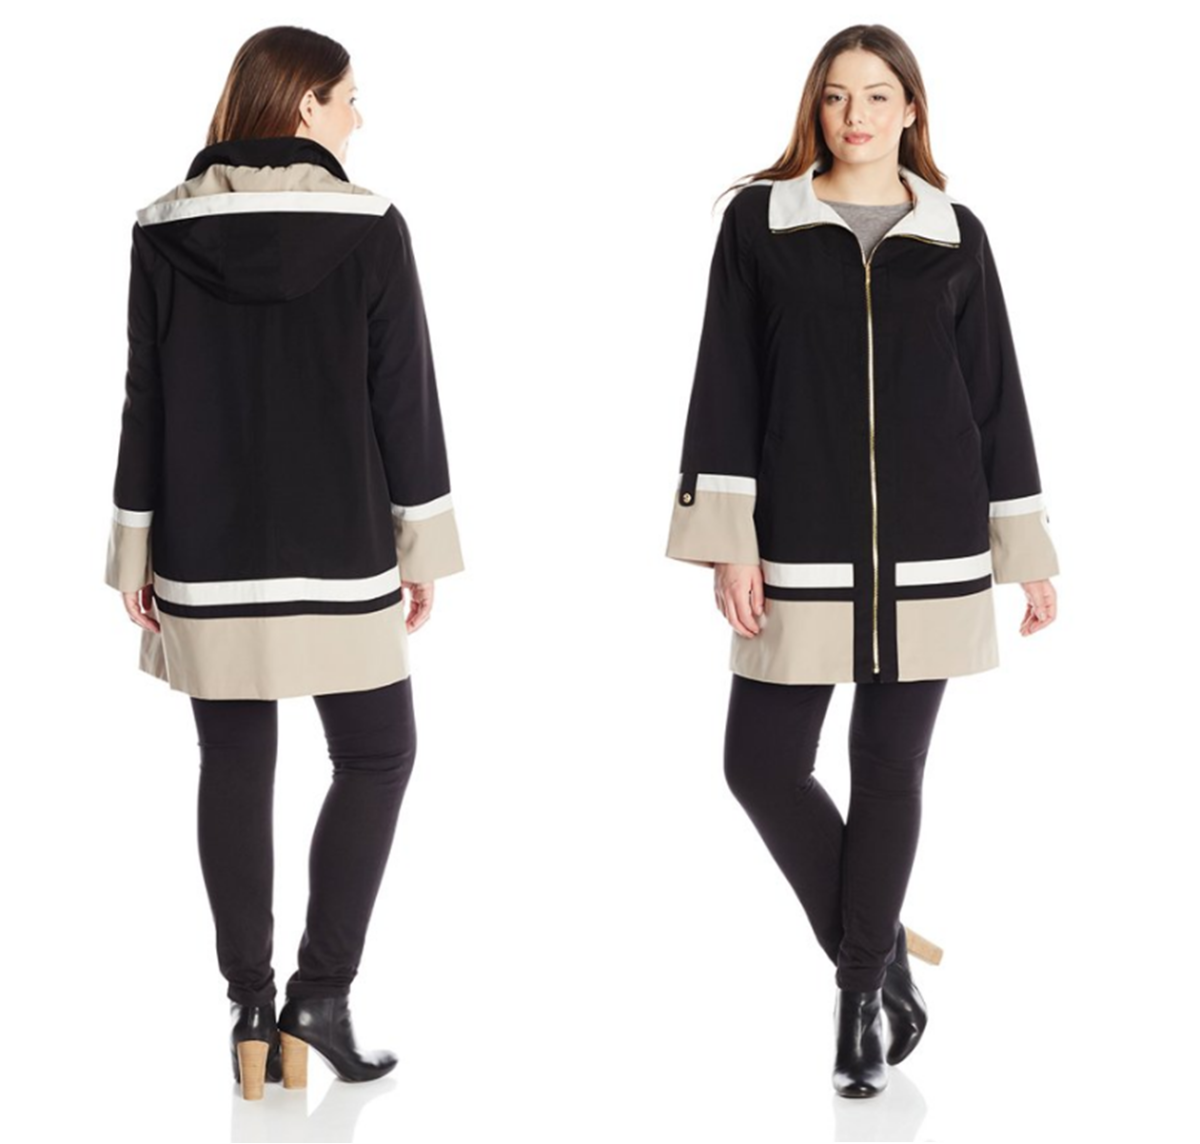 A-line water-resistant poly color-block jacket with button-tab sleeve cuffs and detachable hood